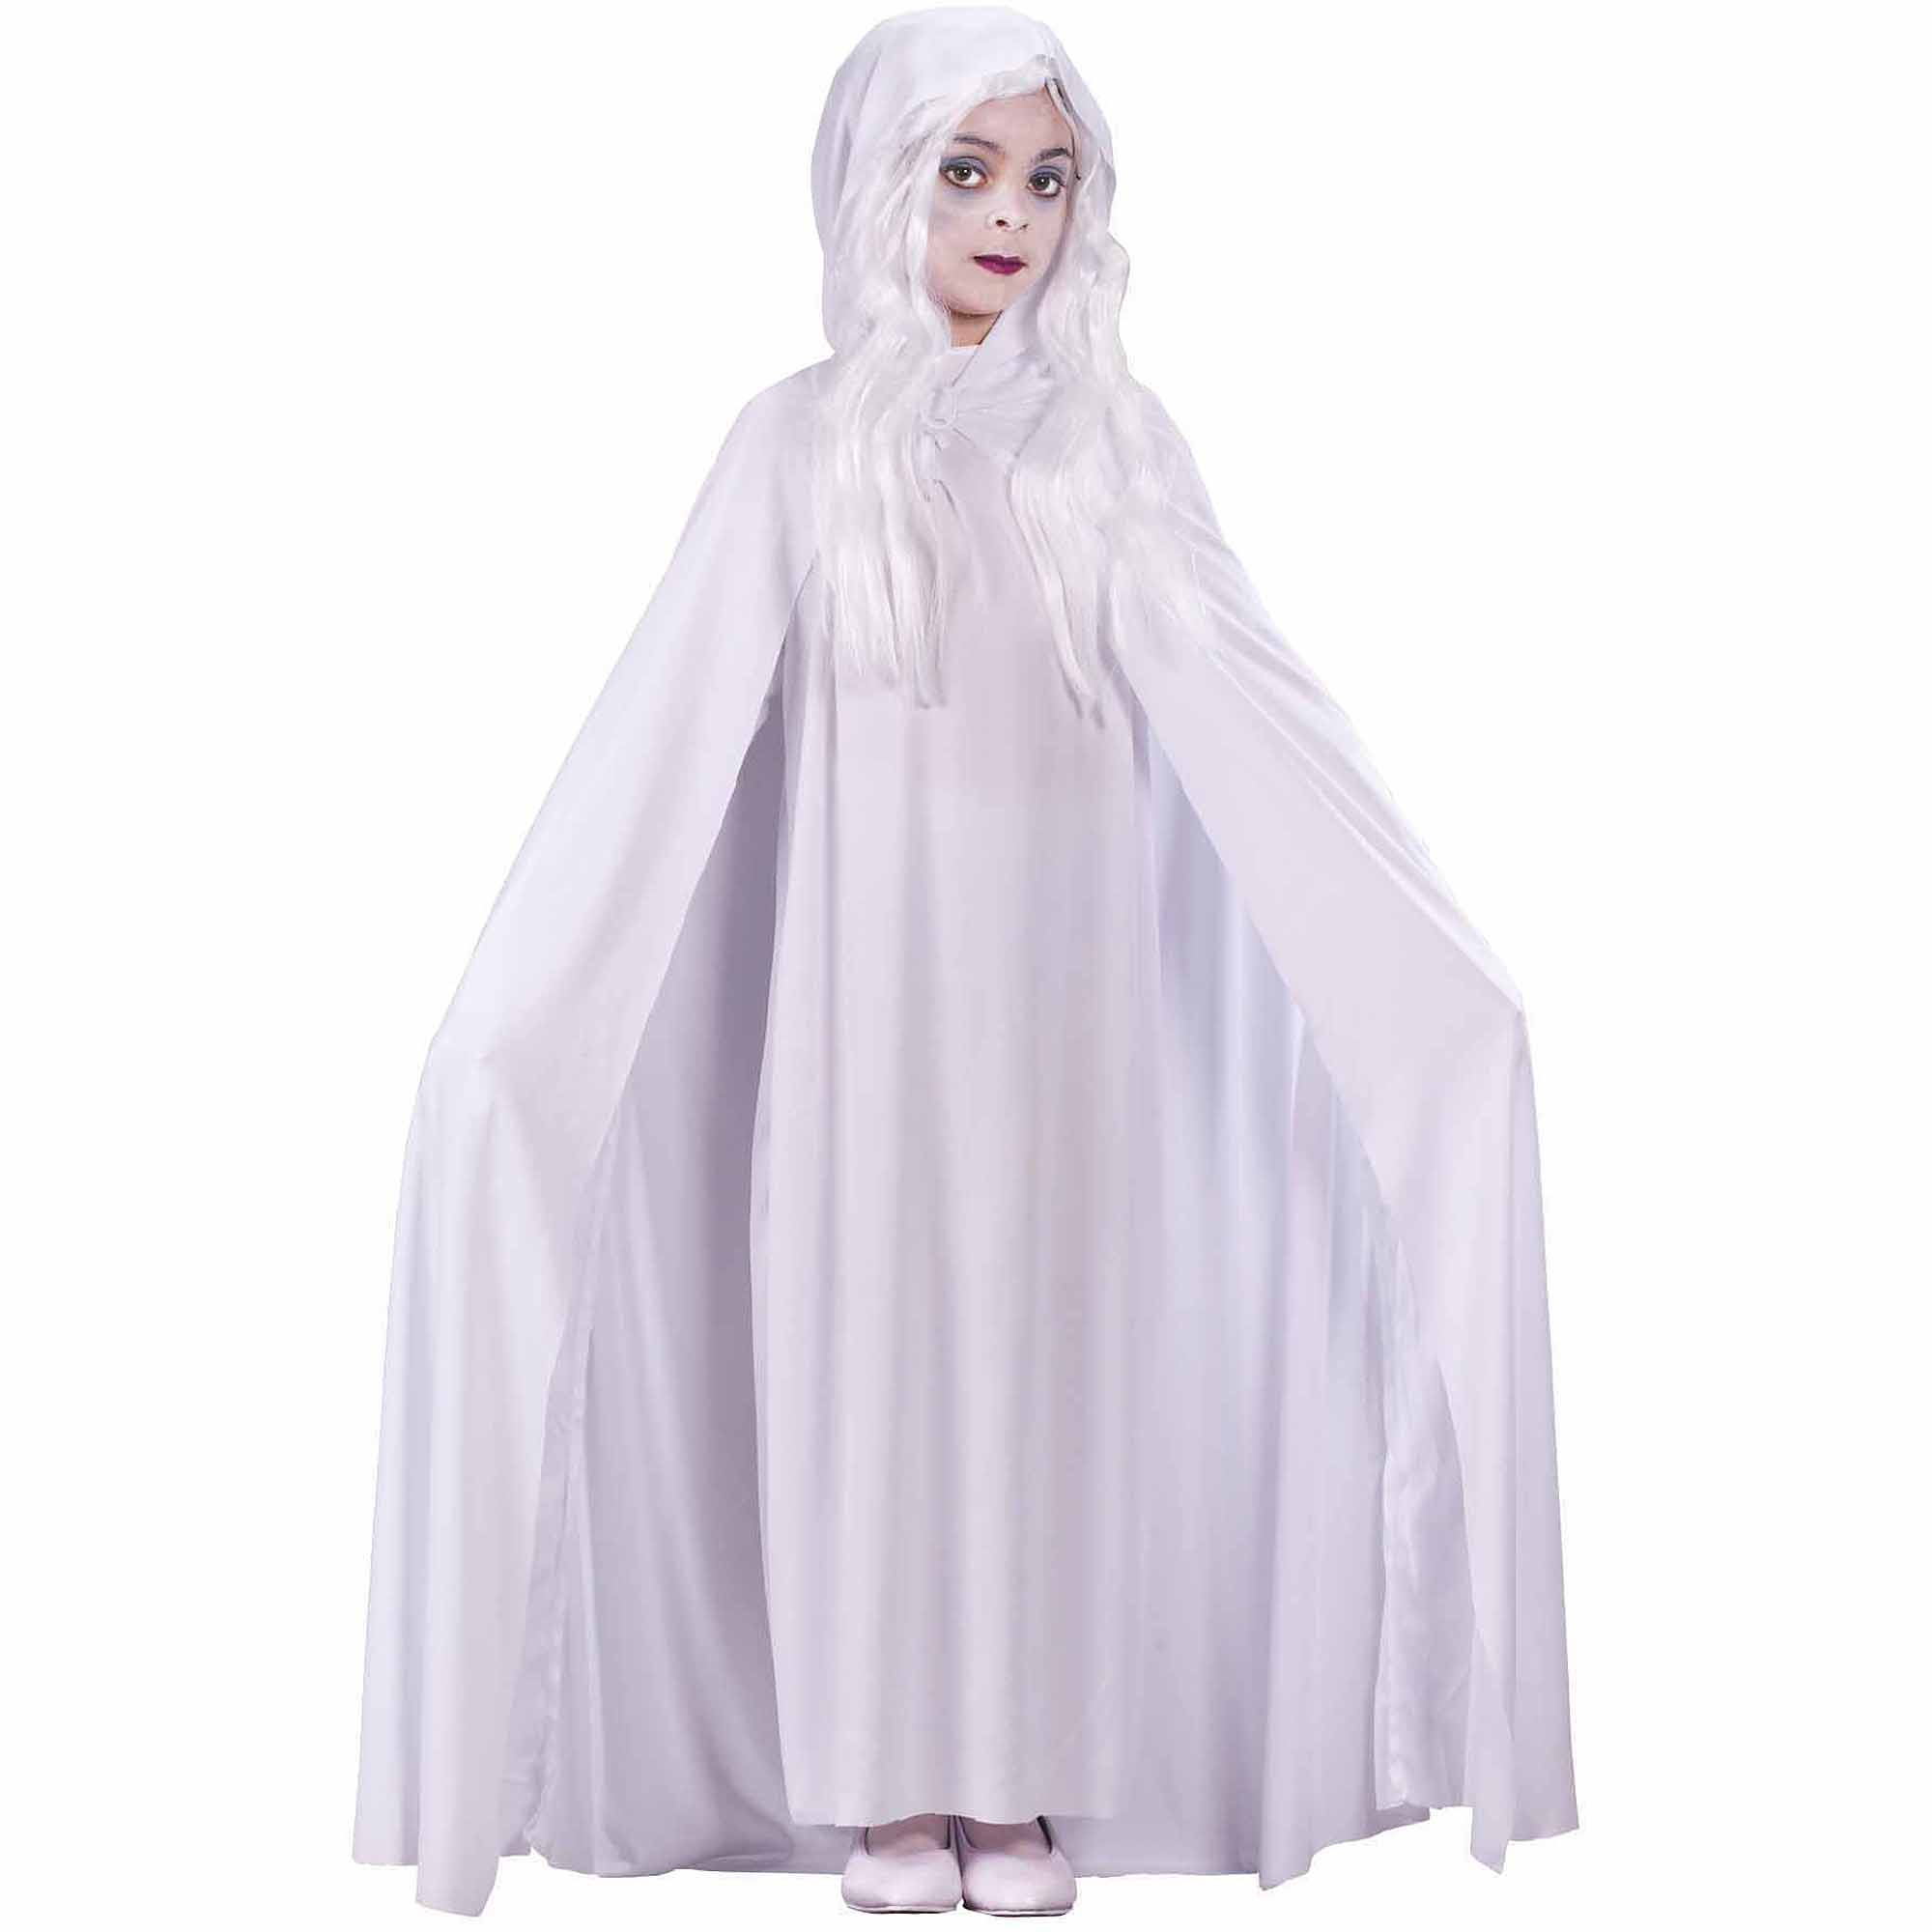 Childrens Kids Ghost Fancy Dress Costume Halloween Boys Girls Outfit M